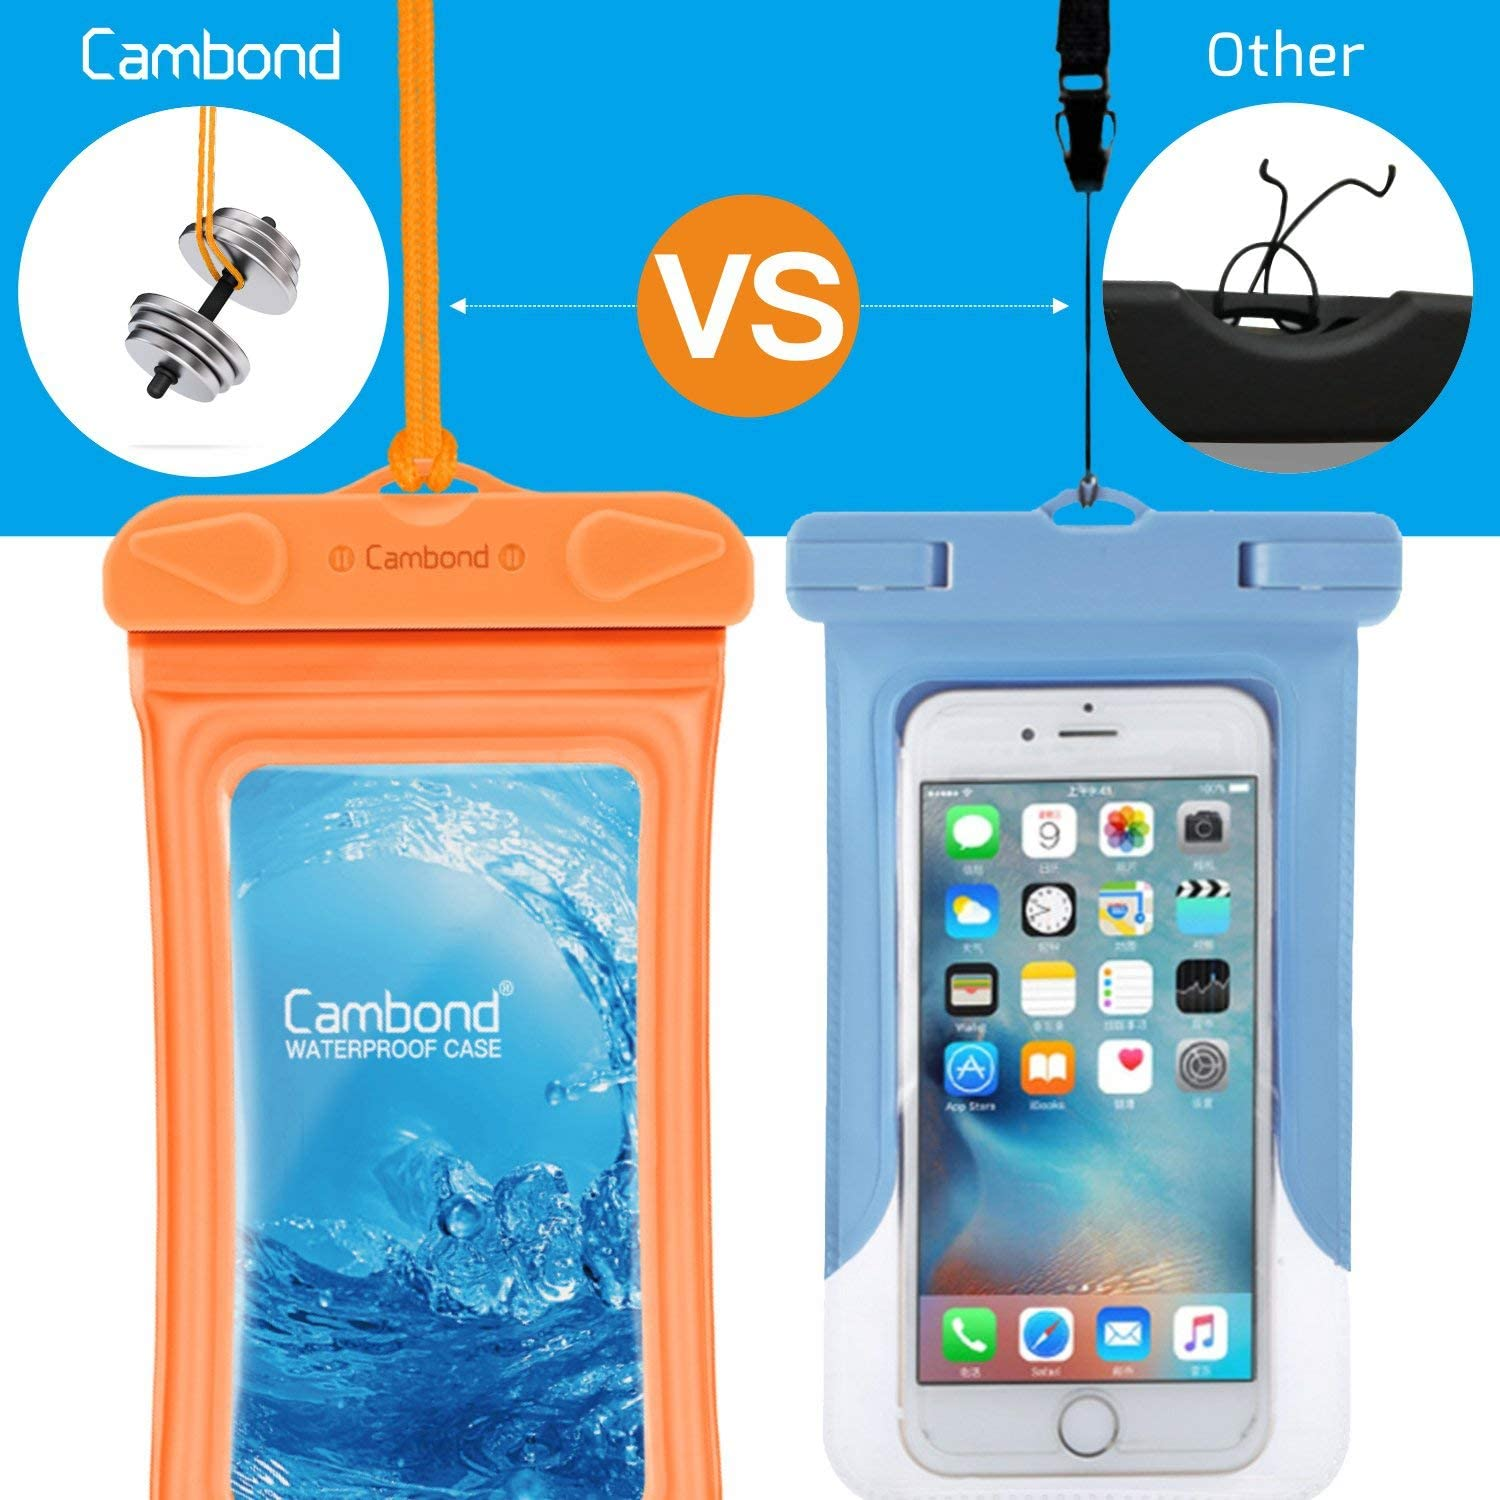 Floating Water Proof Cell Phone Case Both Sides Clear Dry Bag for iPhone 11//XS Max//XR//X//8//7 Plus Galaxy Up to 6.5 4 Pack Snorkeling Cruise Ship Kayaking Cambond Floatable Waterproof Phone Pouch